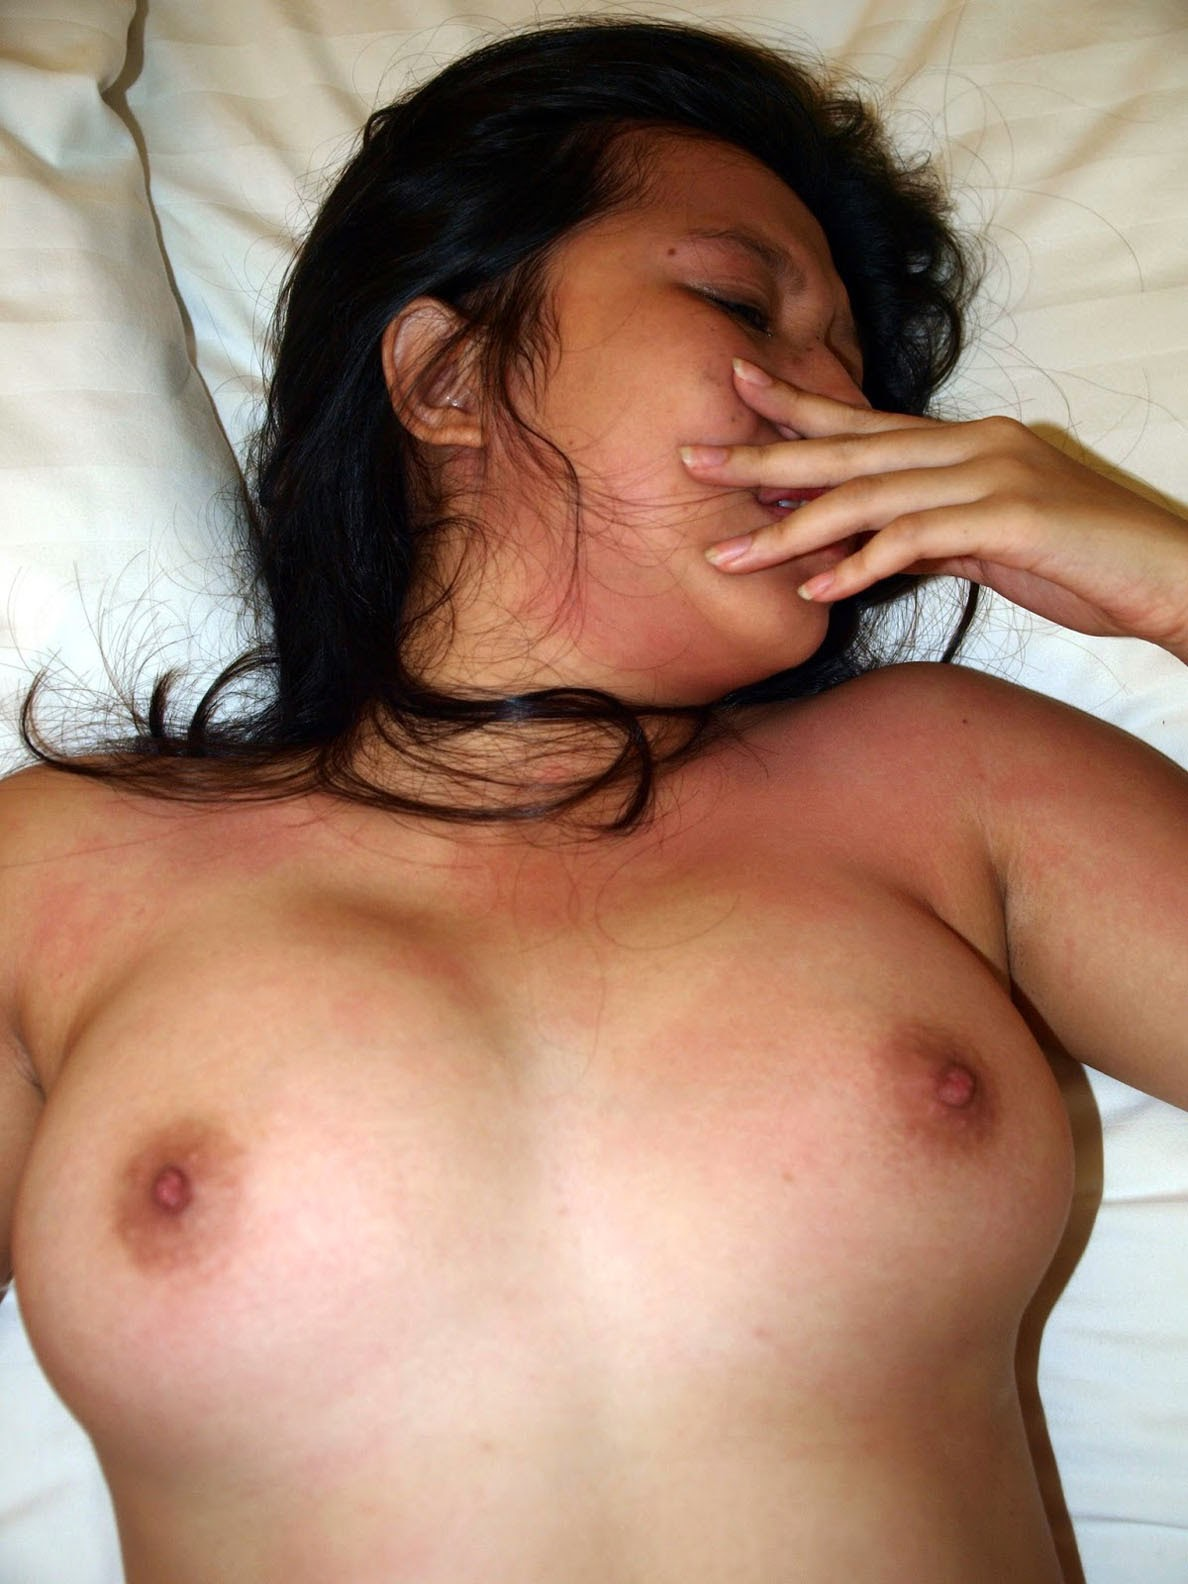 full indonesian naked pictures